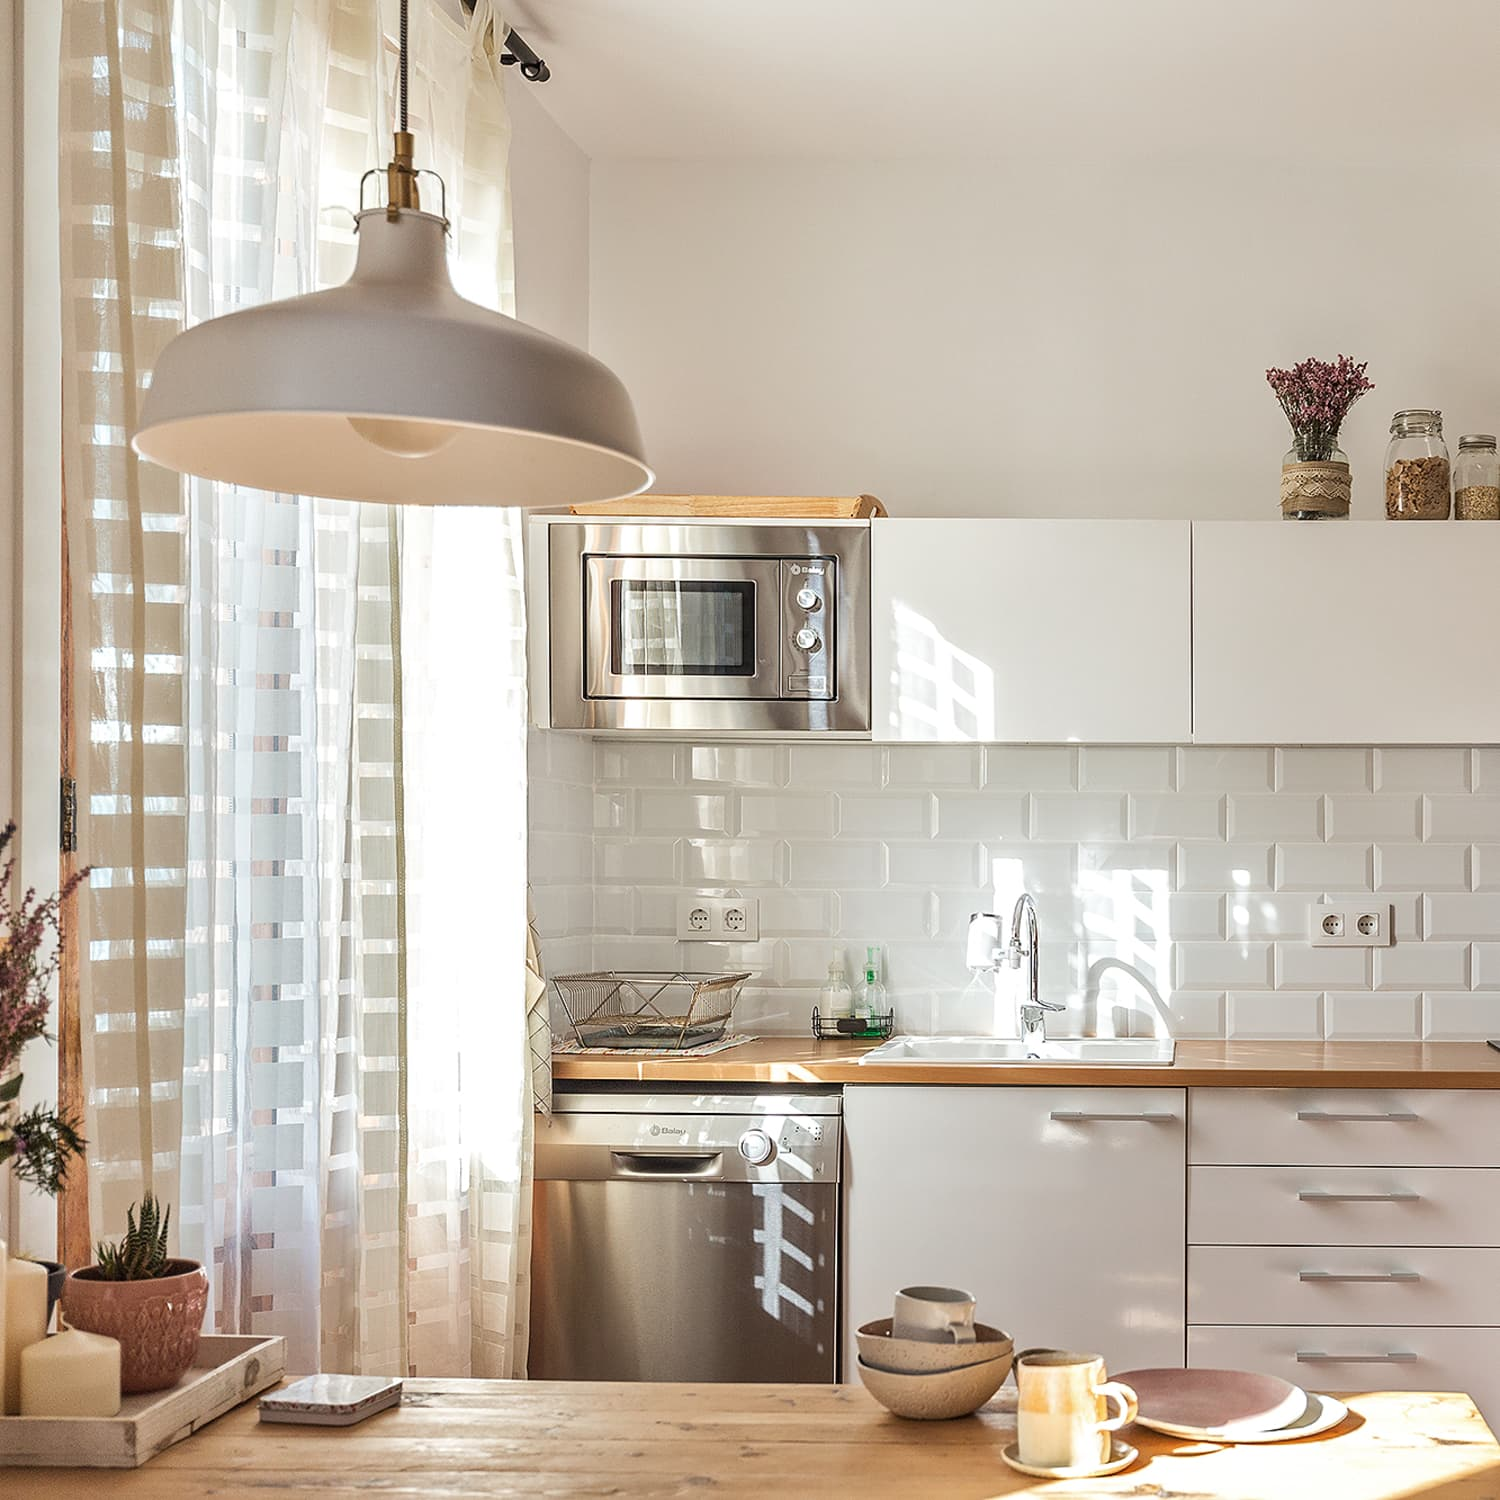 10 Ways to Clean Your Kitchen Less Often | Kitchn